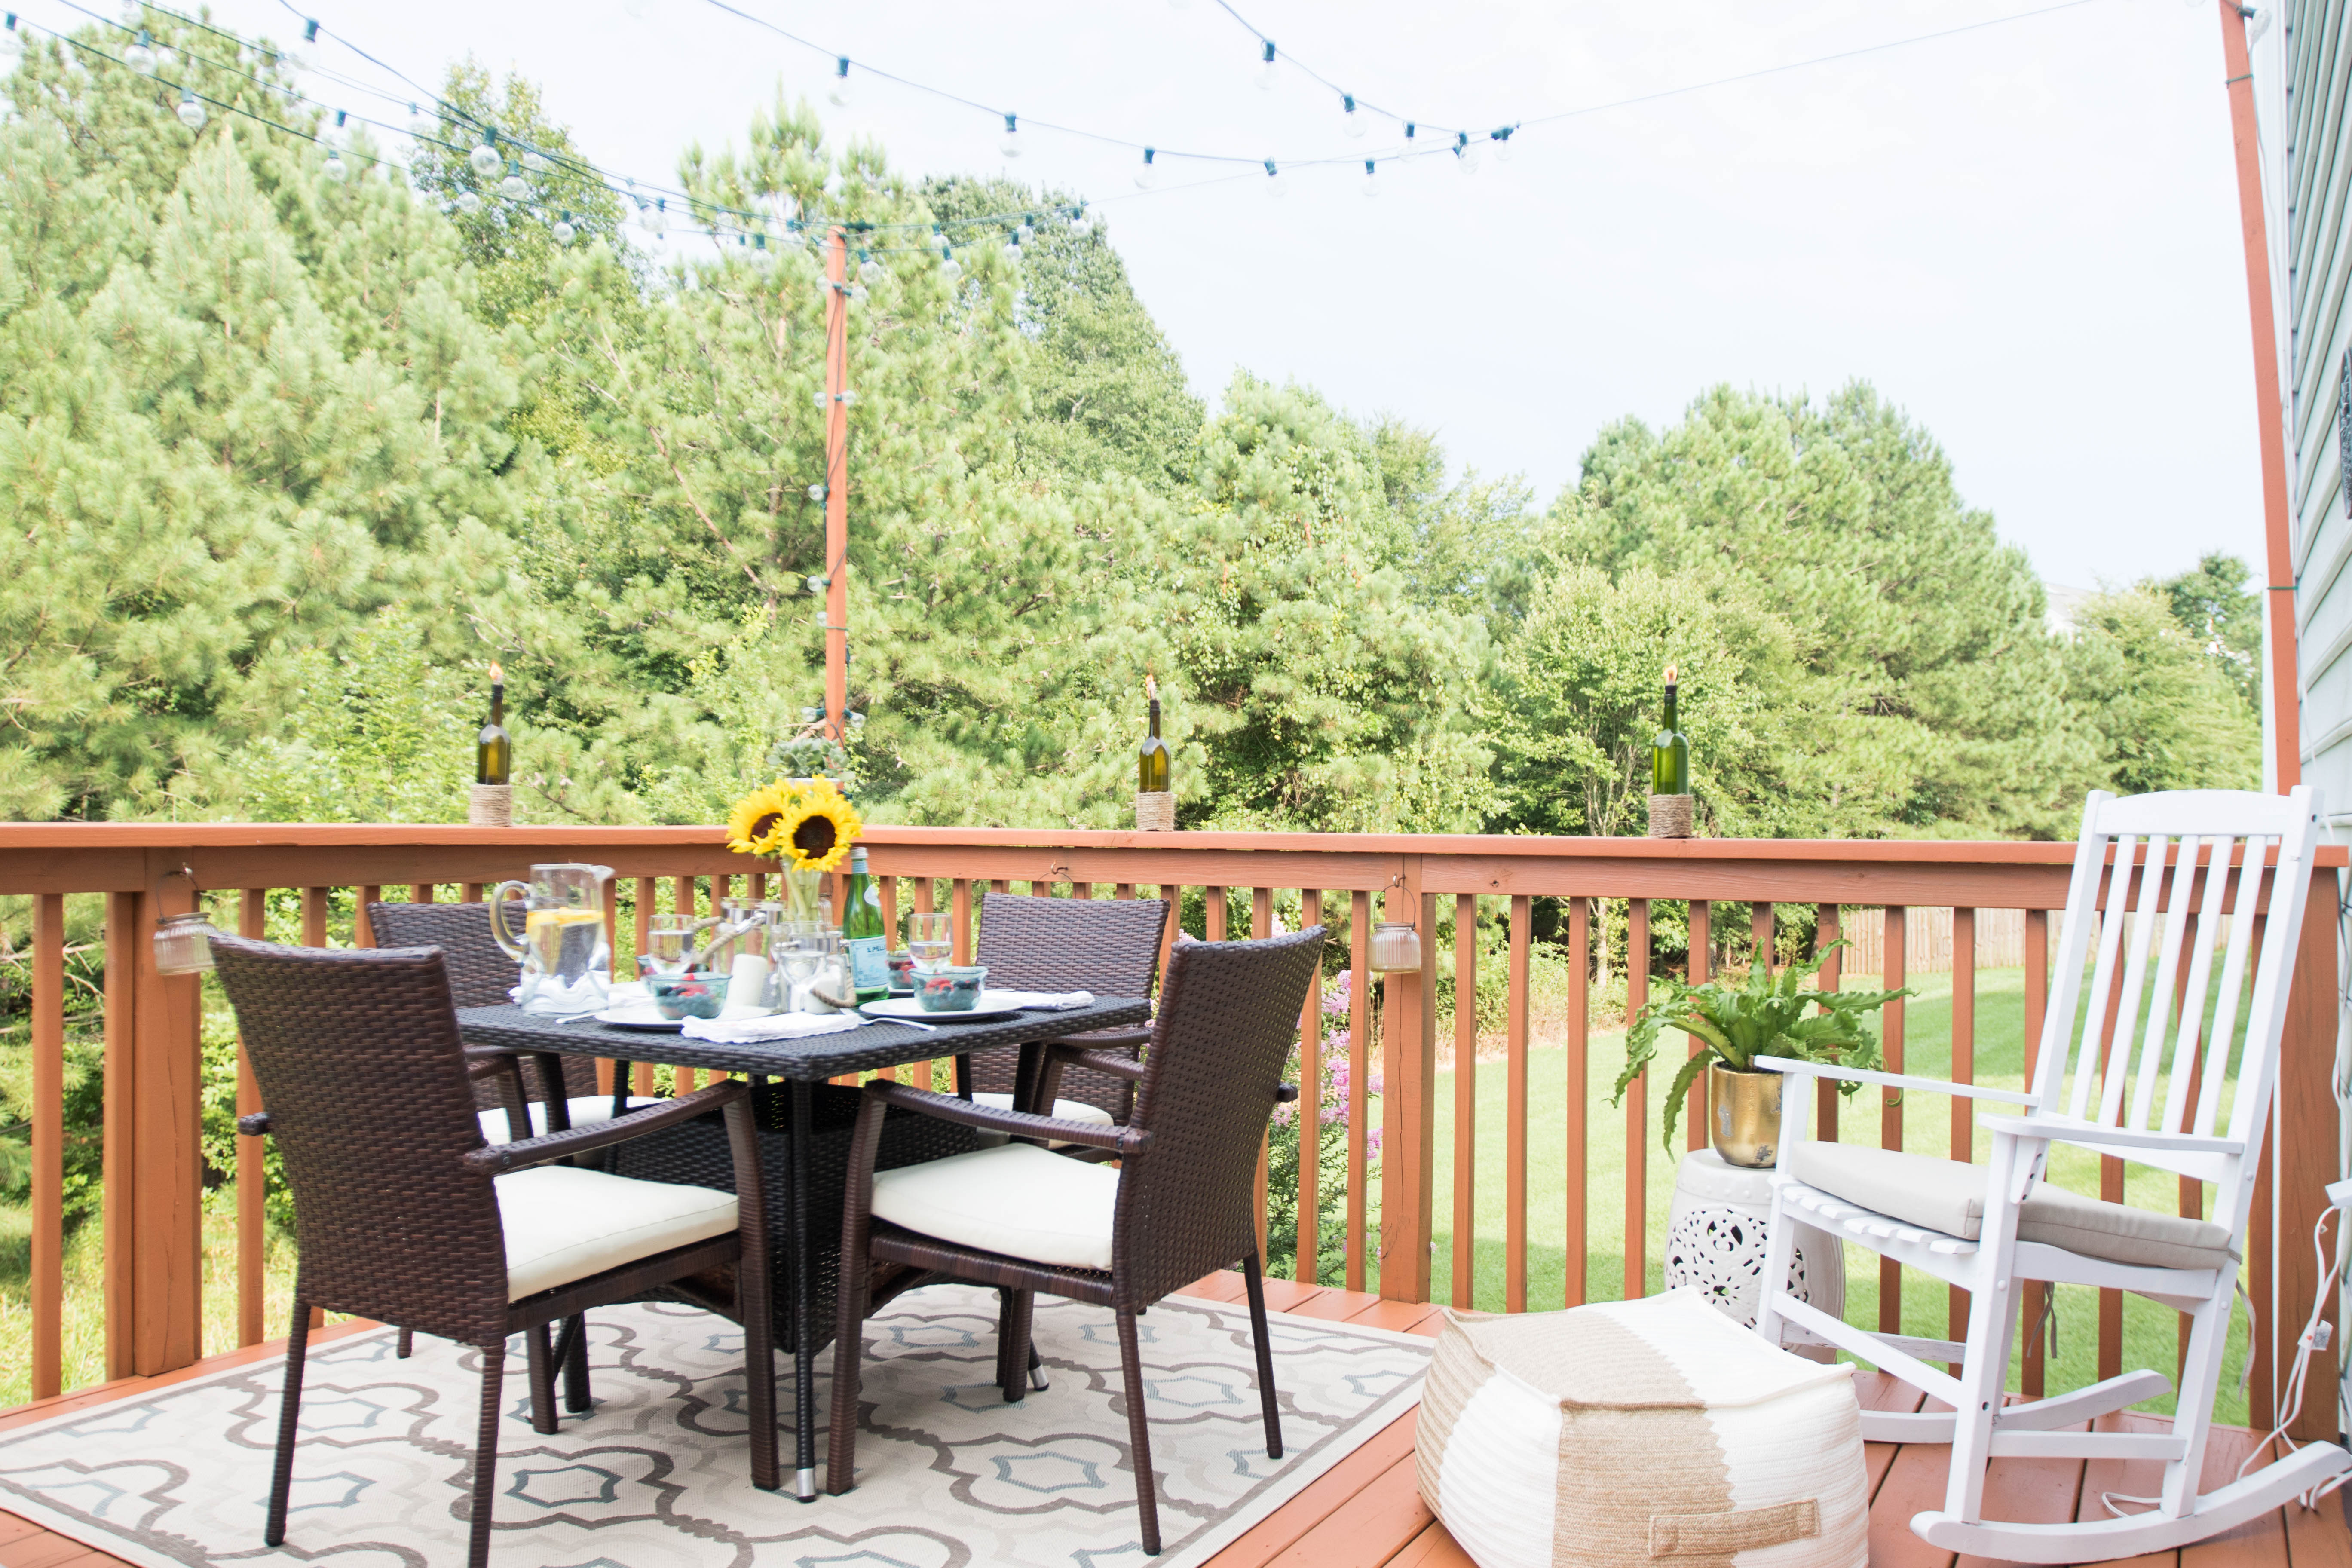 Patio Reveal with ATG Stores